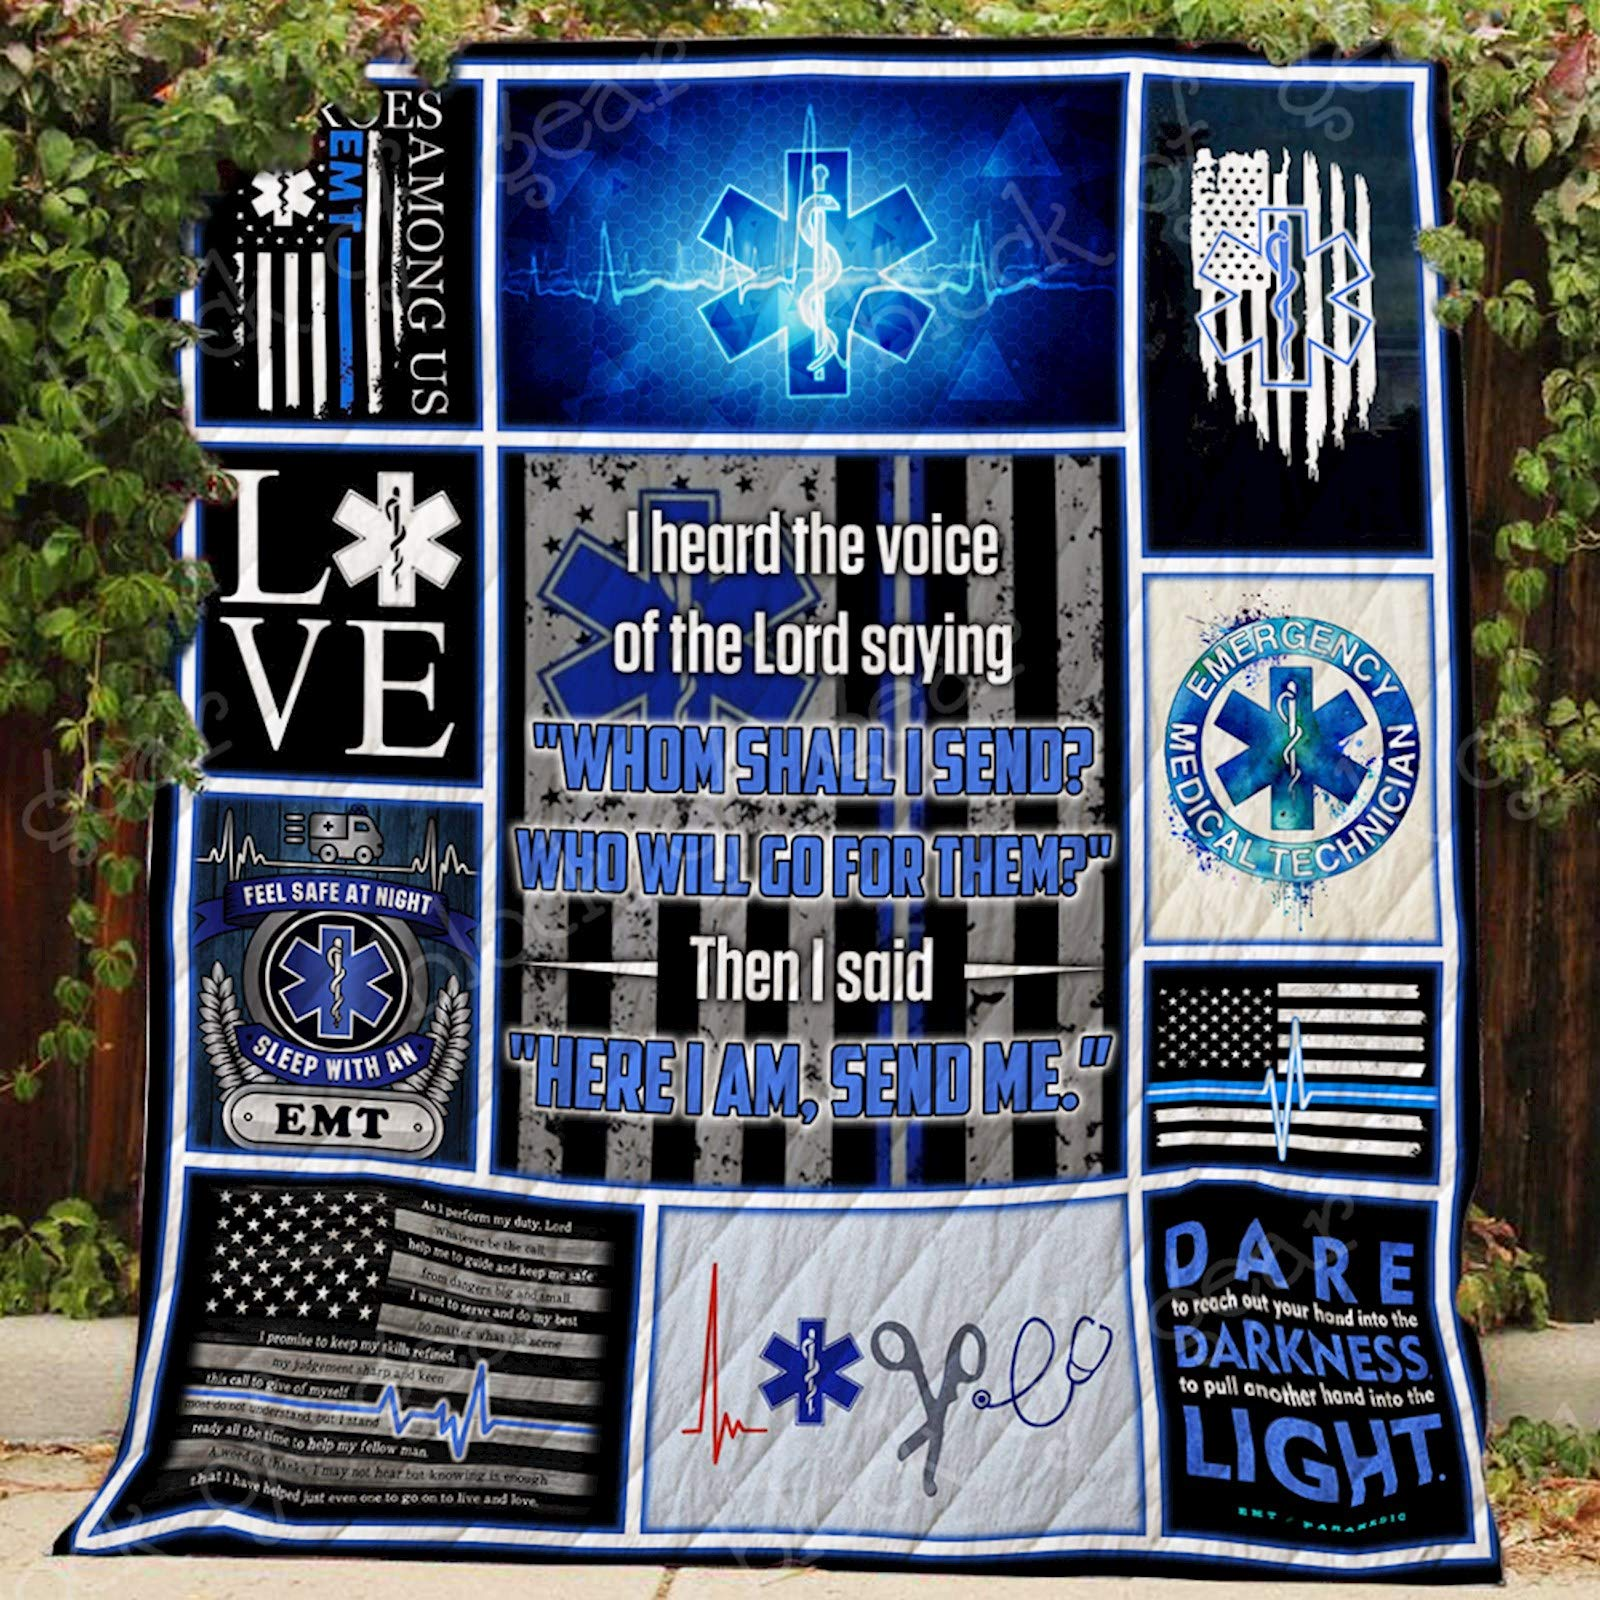 EMT Paramedic Thin White Line Quilt P202, Twin All-Season Quilts Comforters with Reversible Cotton King/Queen/Twin Size - Best Decorative Quilts-Unique Quilted for Gifts